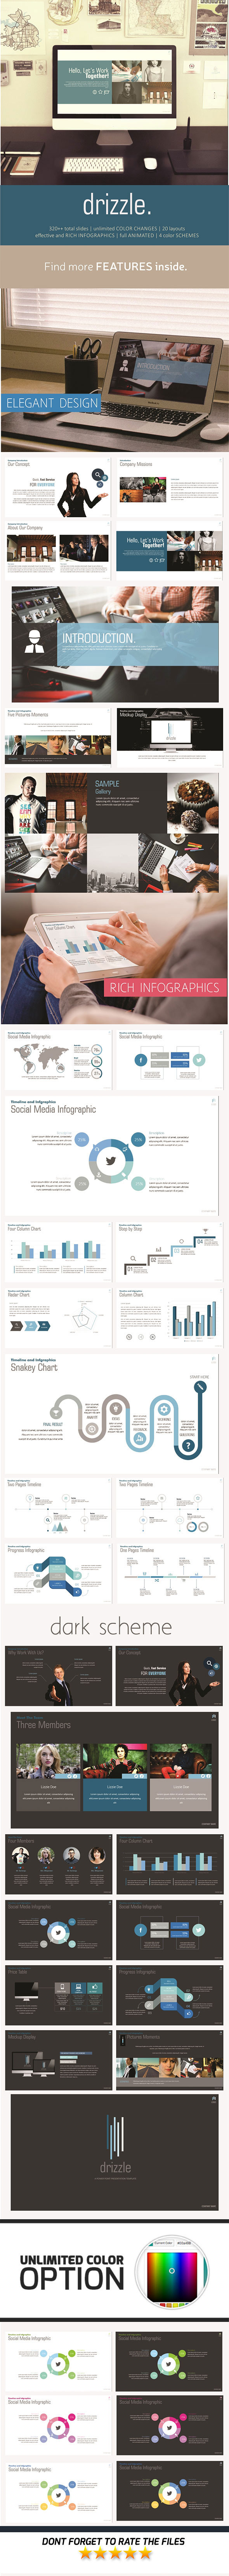 Drizzle PowerPoint Template - Business PowerPoint Templates